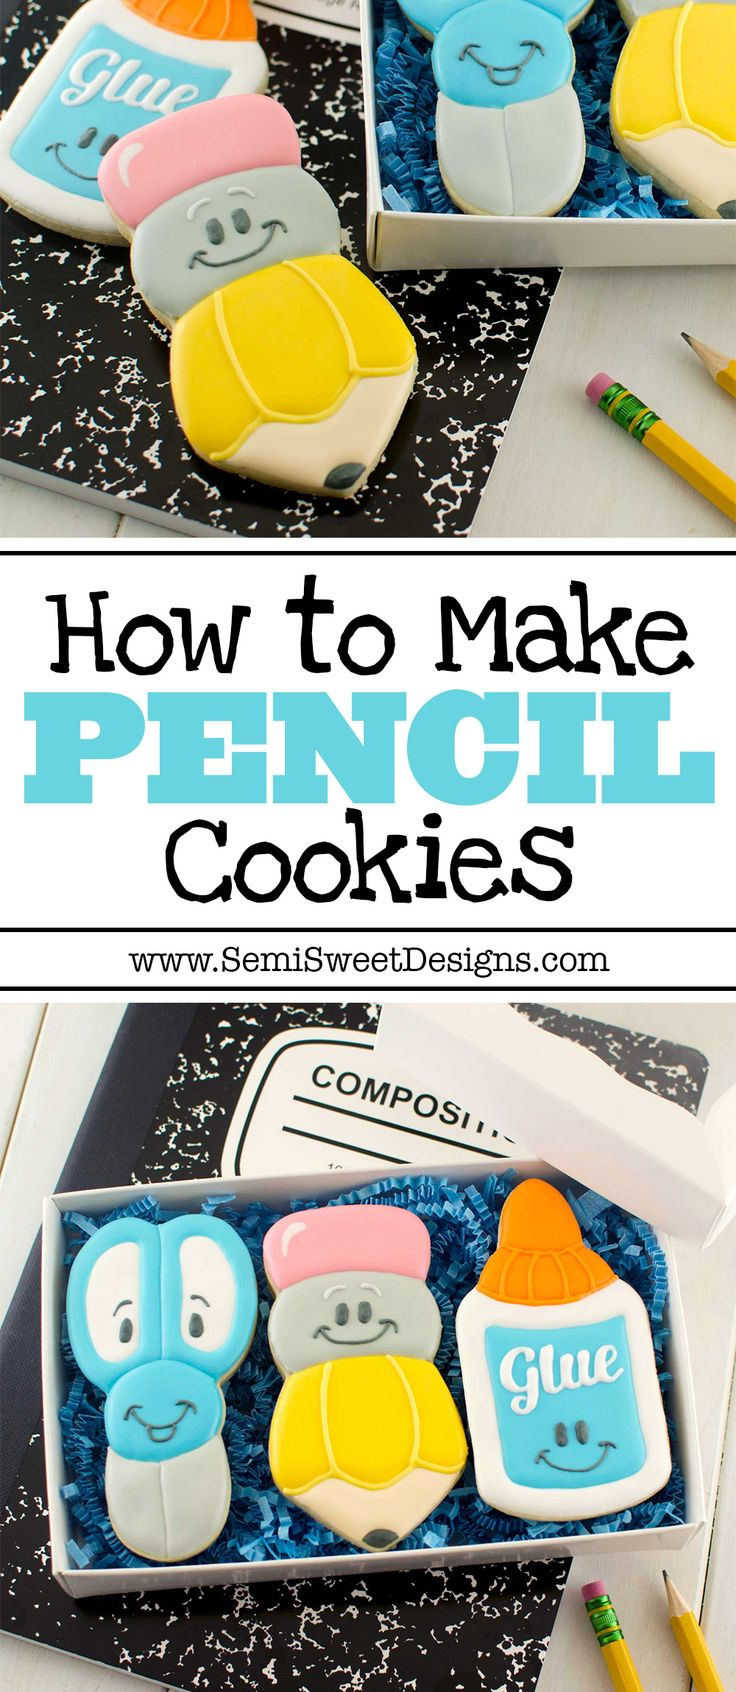 A detailed tutorial for decorating pencil cookies with royal icing. Recipes and free design template available! Perfect for back-to-school season.